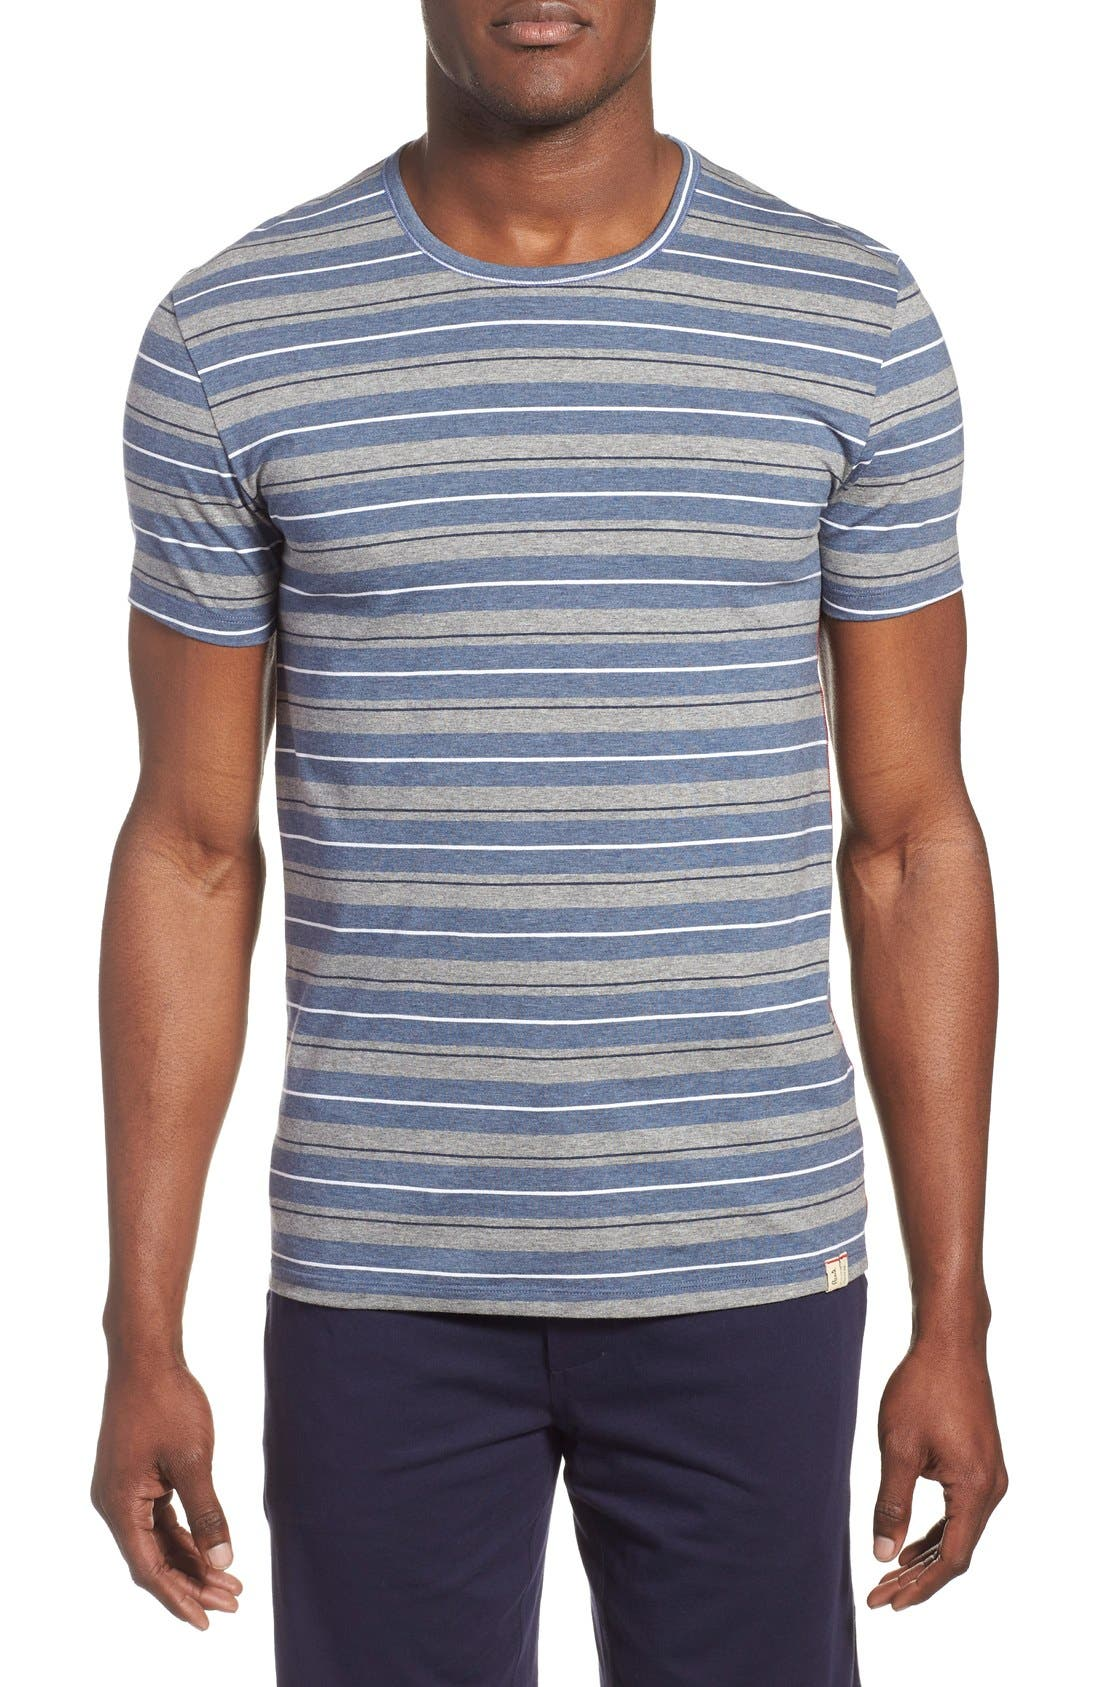 Main Image - Paul Smith Stripe Stretch Cotton T-Shirt